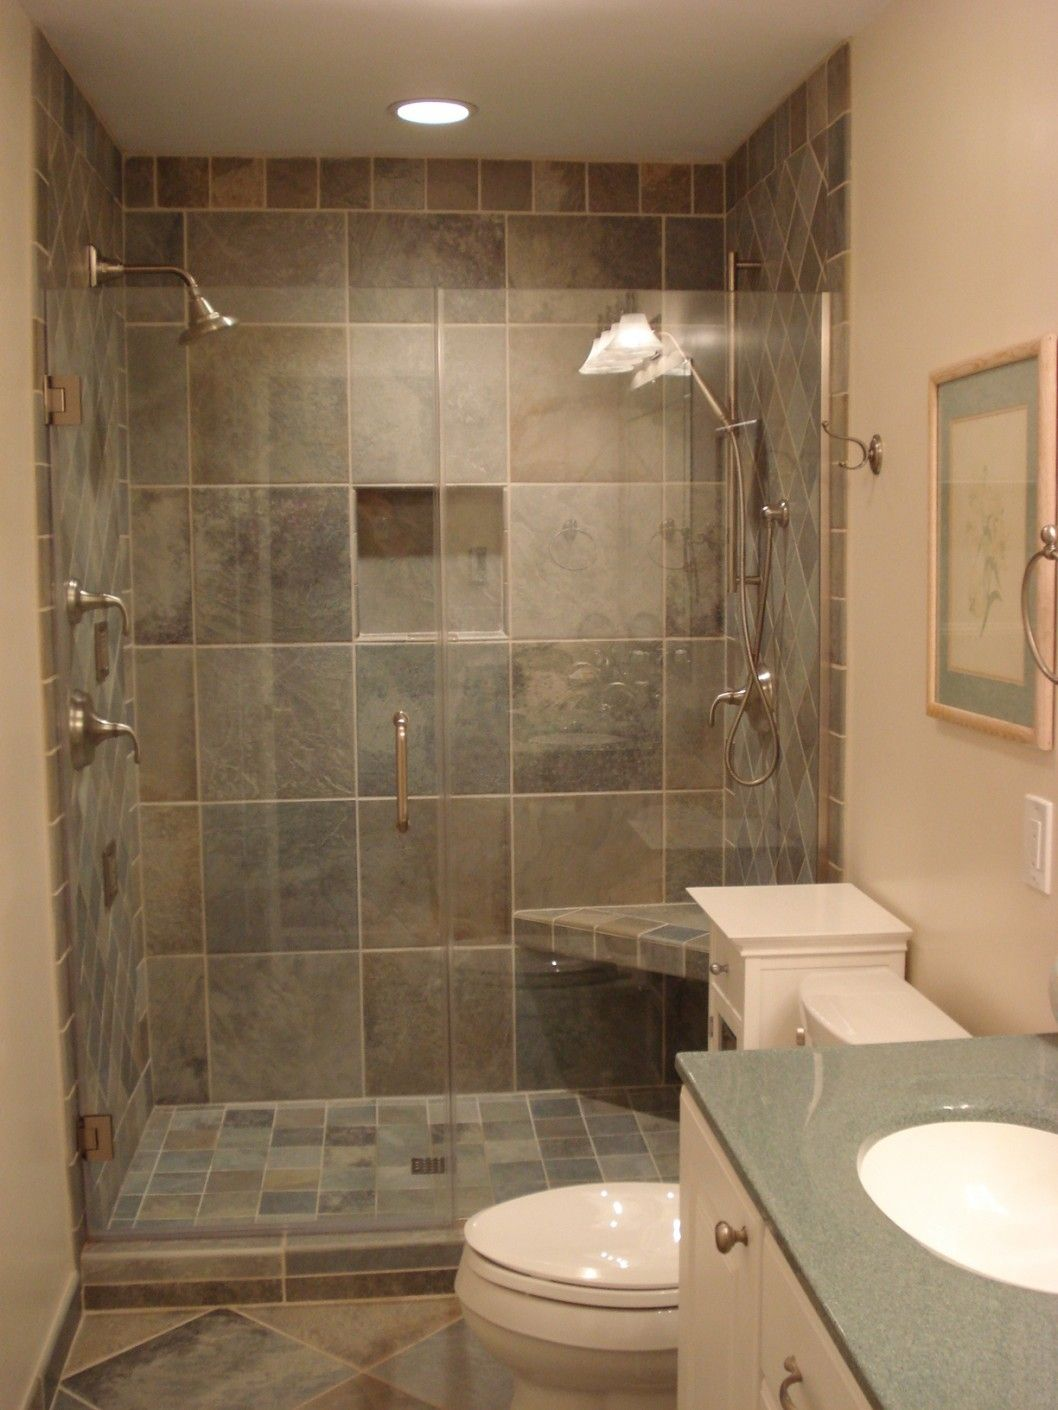 17 Basement Bathroom Ideas On A Budget Tags Small Basement Bathroom Floor Plans Basement